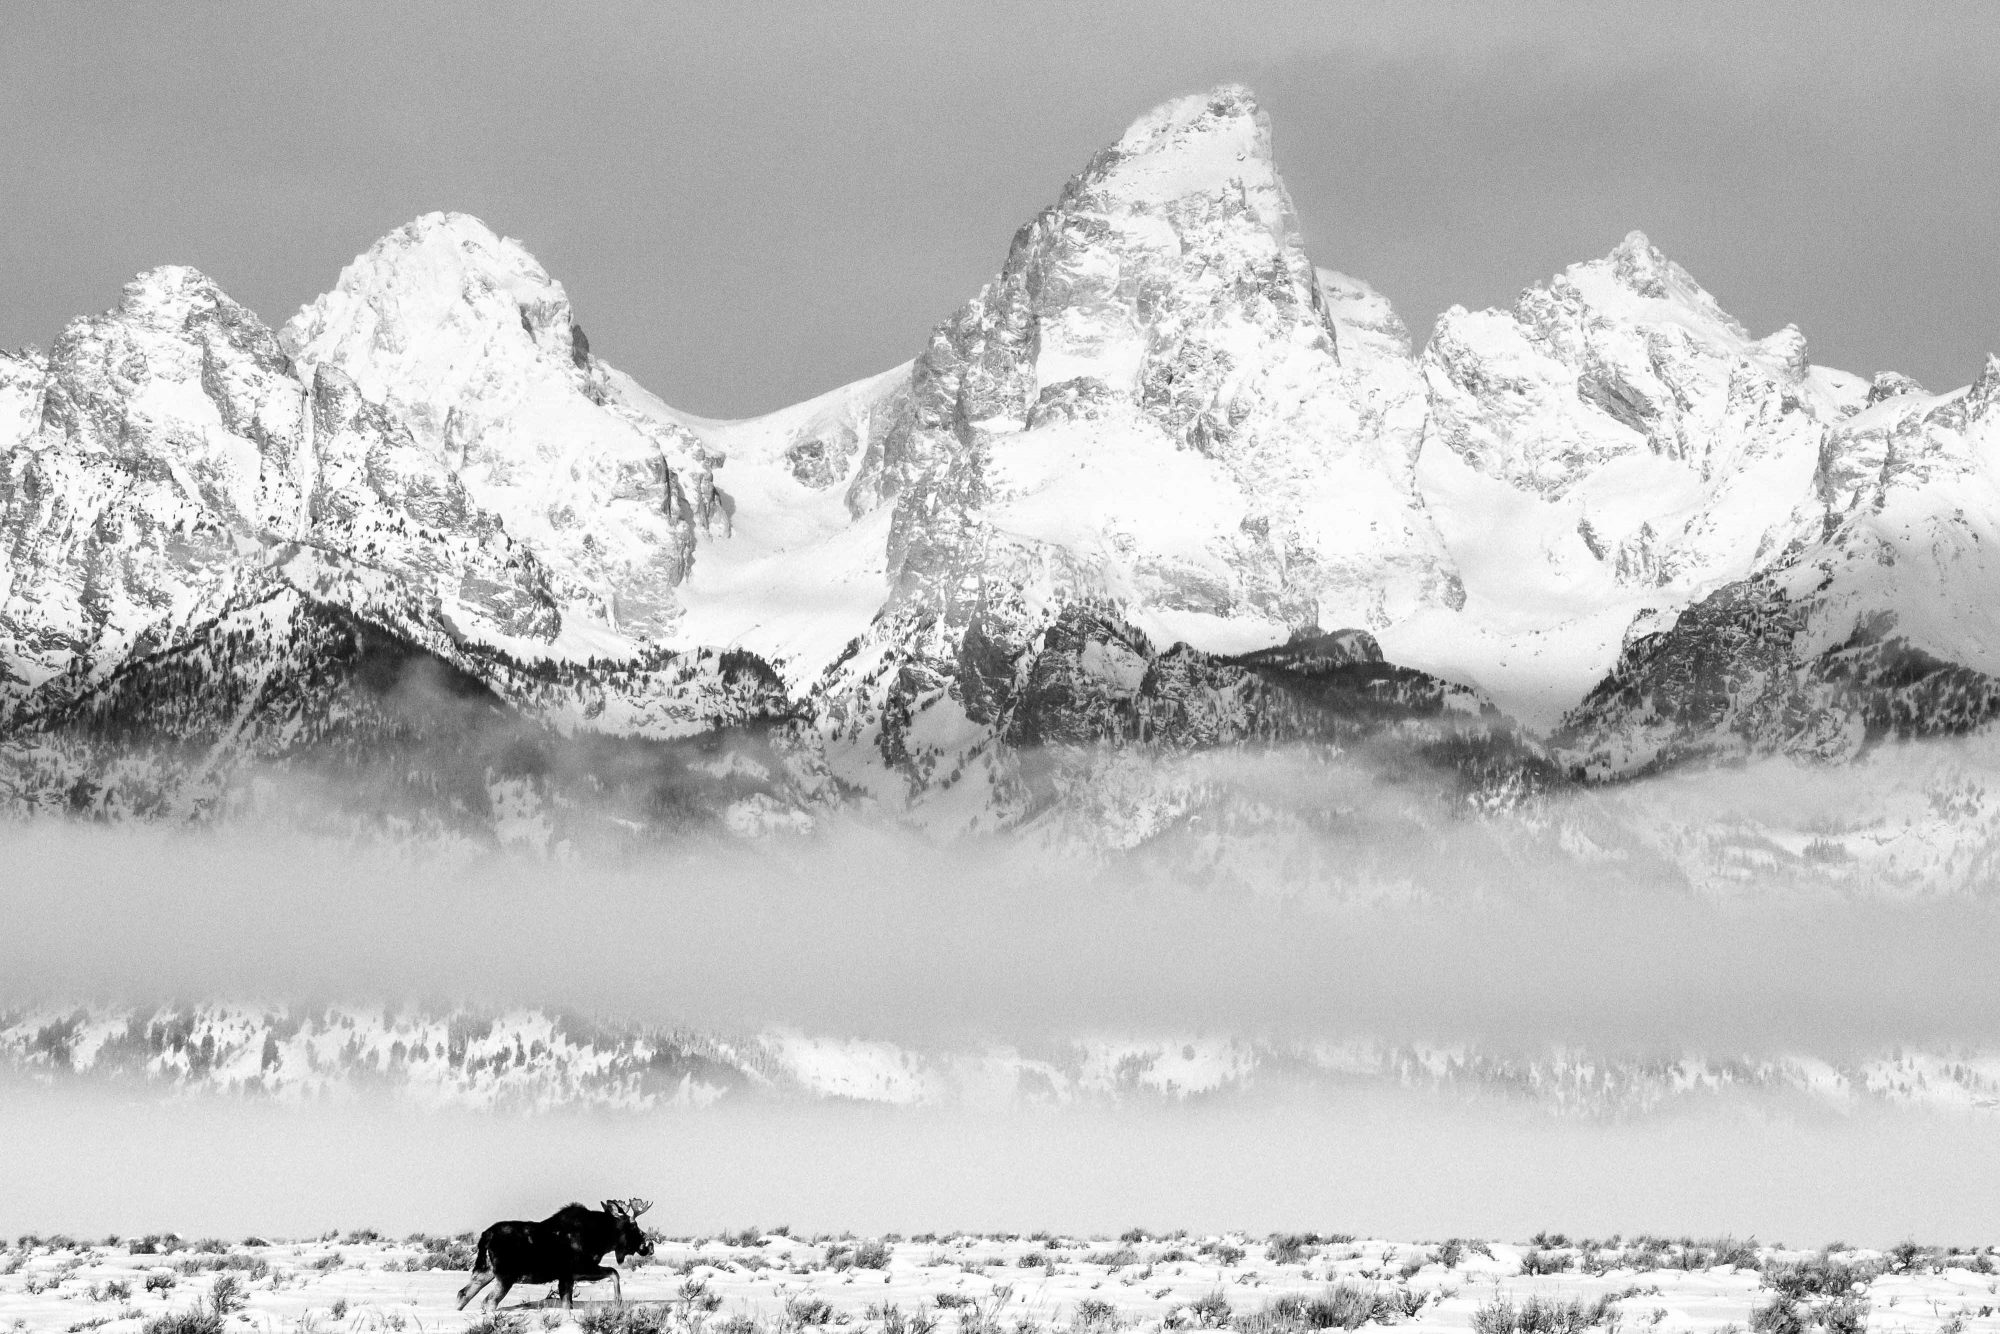 open edition prints - Moose and Tetons © Jay Goodrich